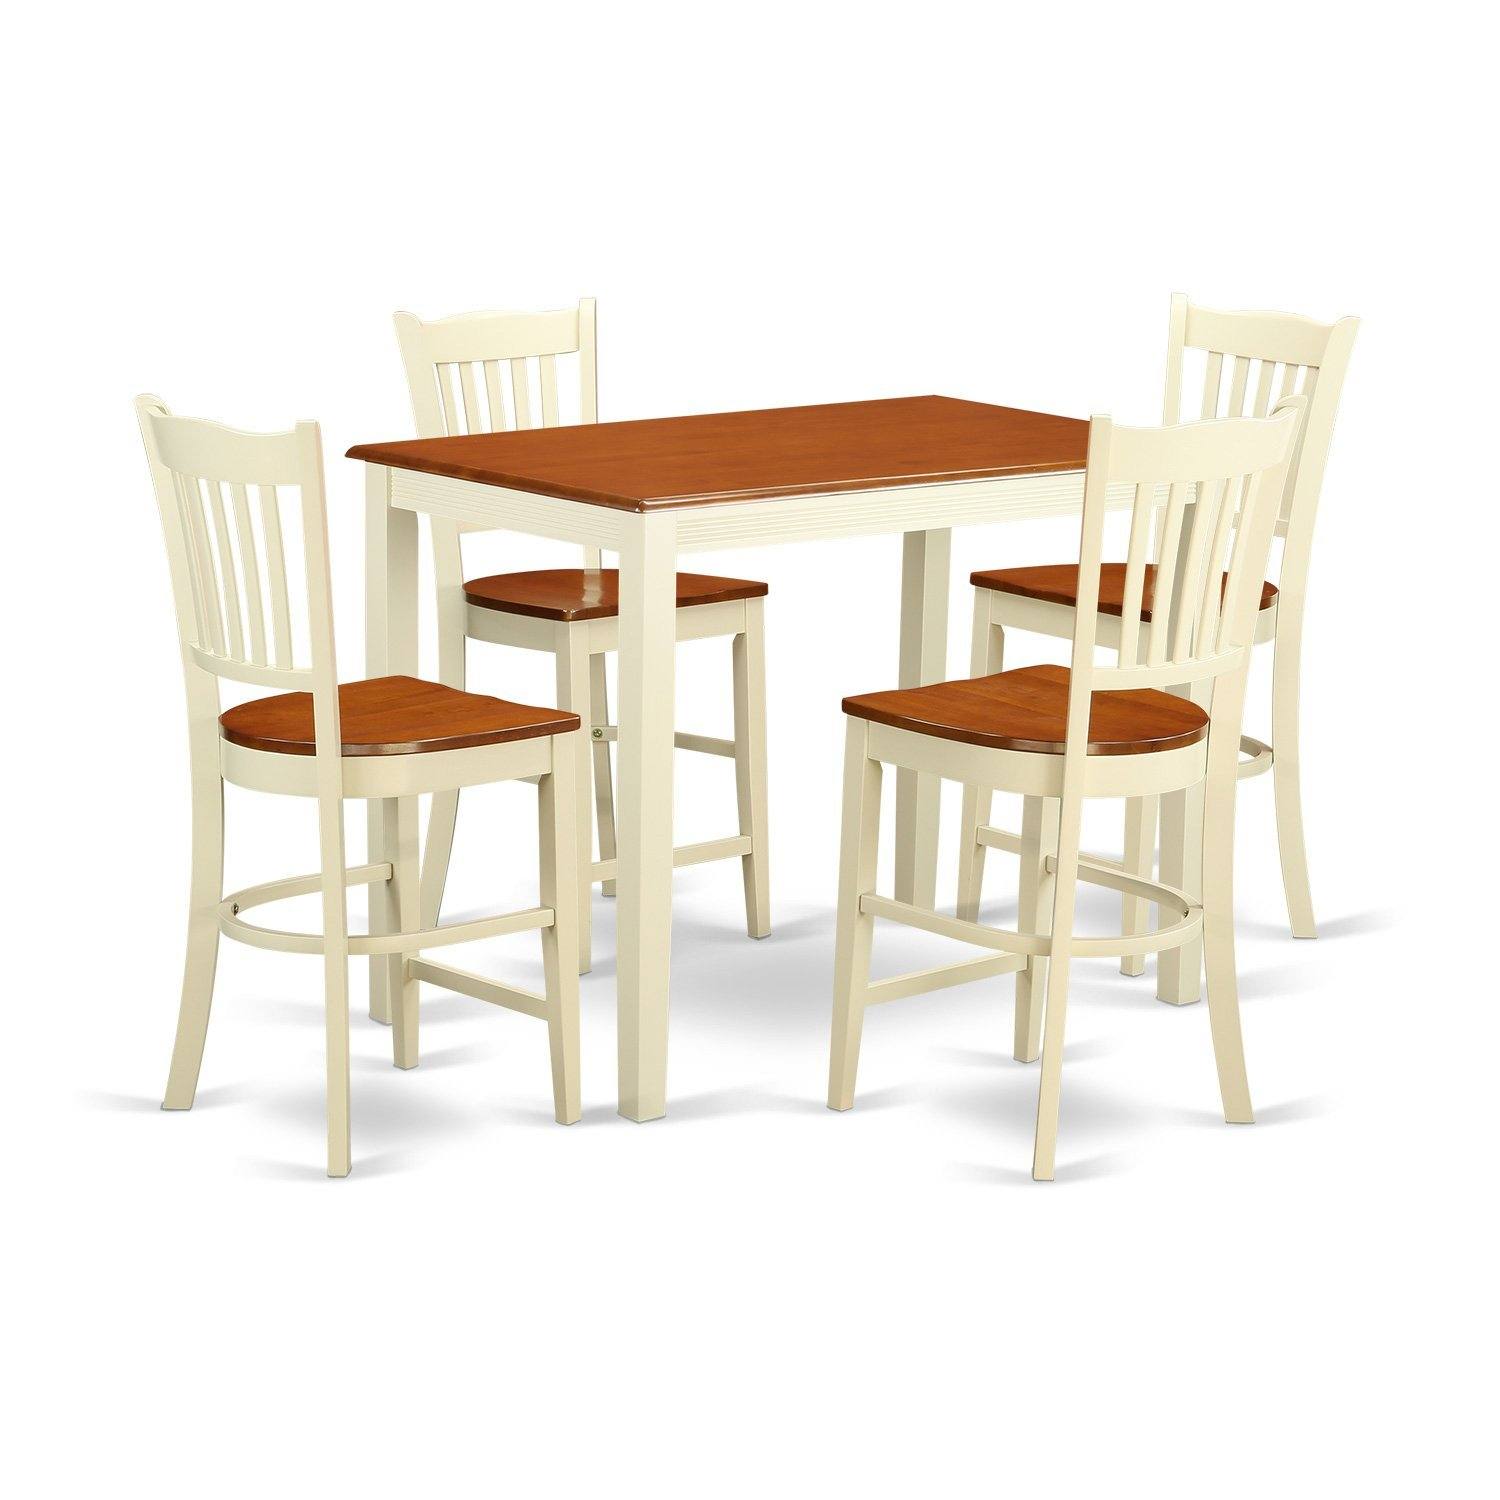 East West Furniture YAGR5-WHI-W 5 Piece Counter Height Table and 4 Kitchen Chairs Set